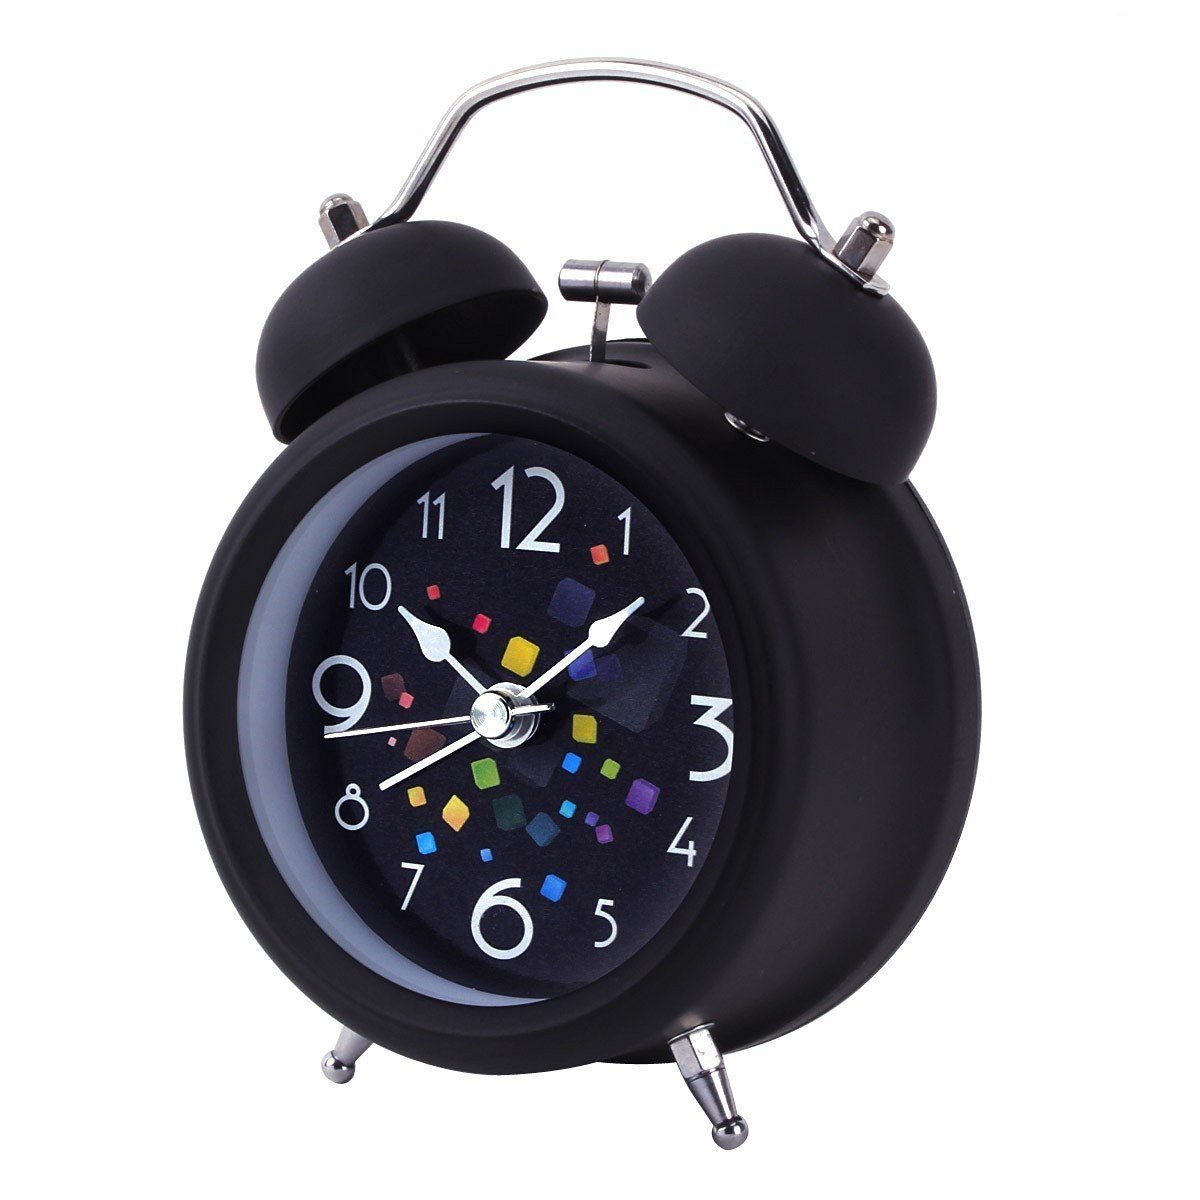 Old Fashioned Alarm Clock Twin Bell Alarm Clock Review